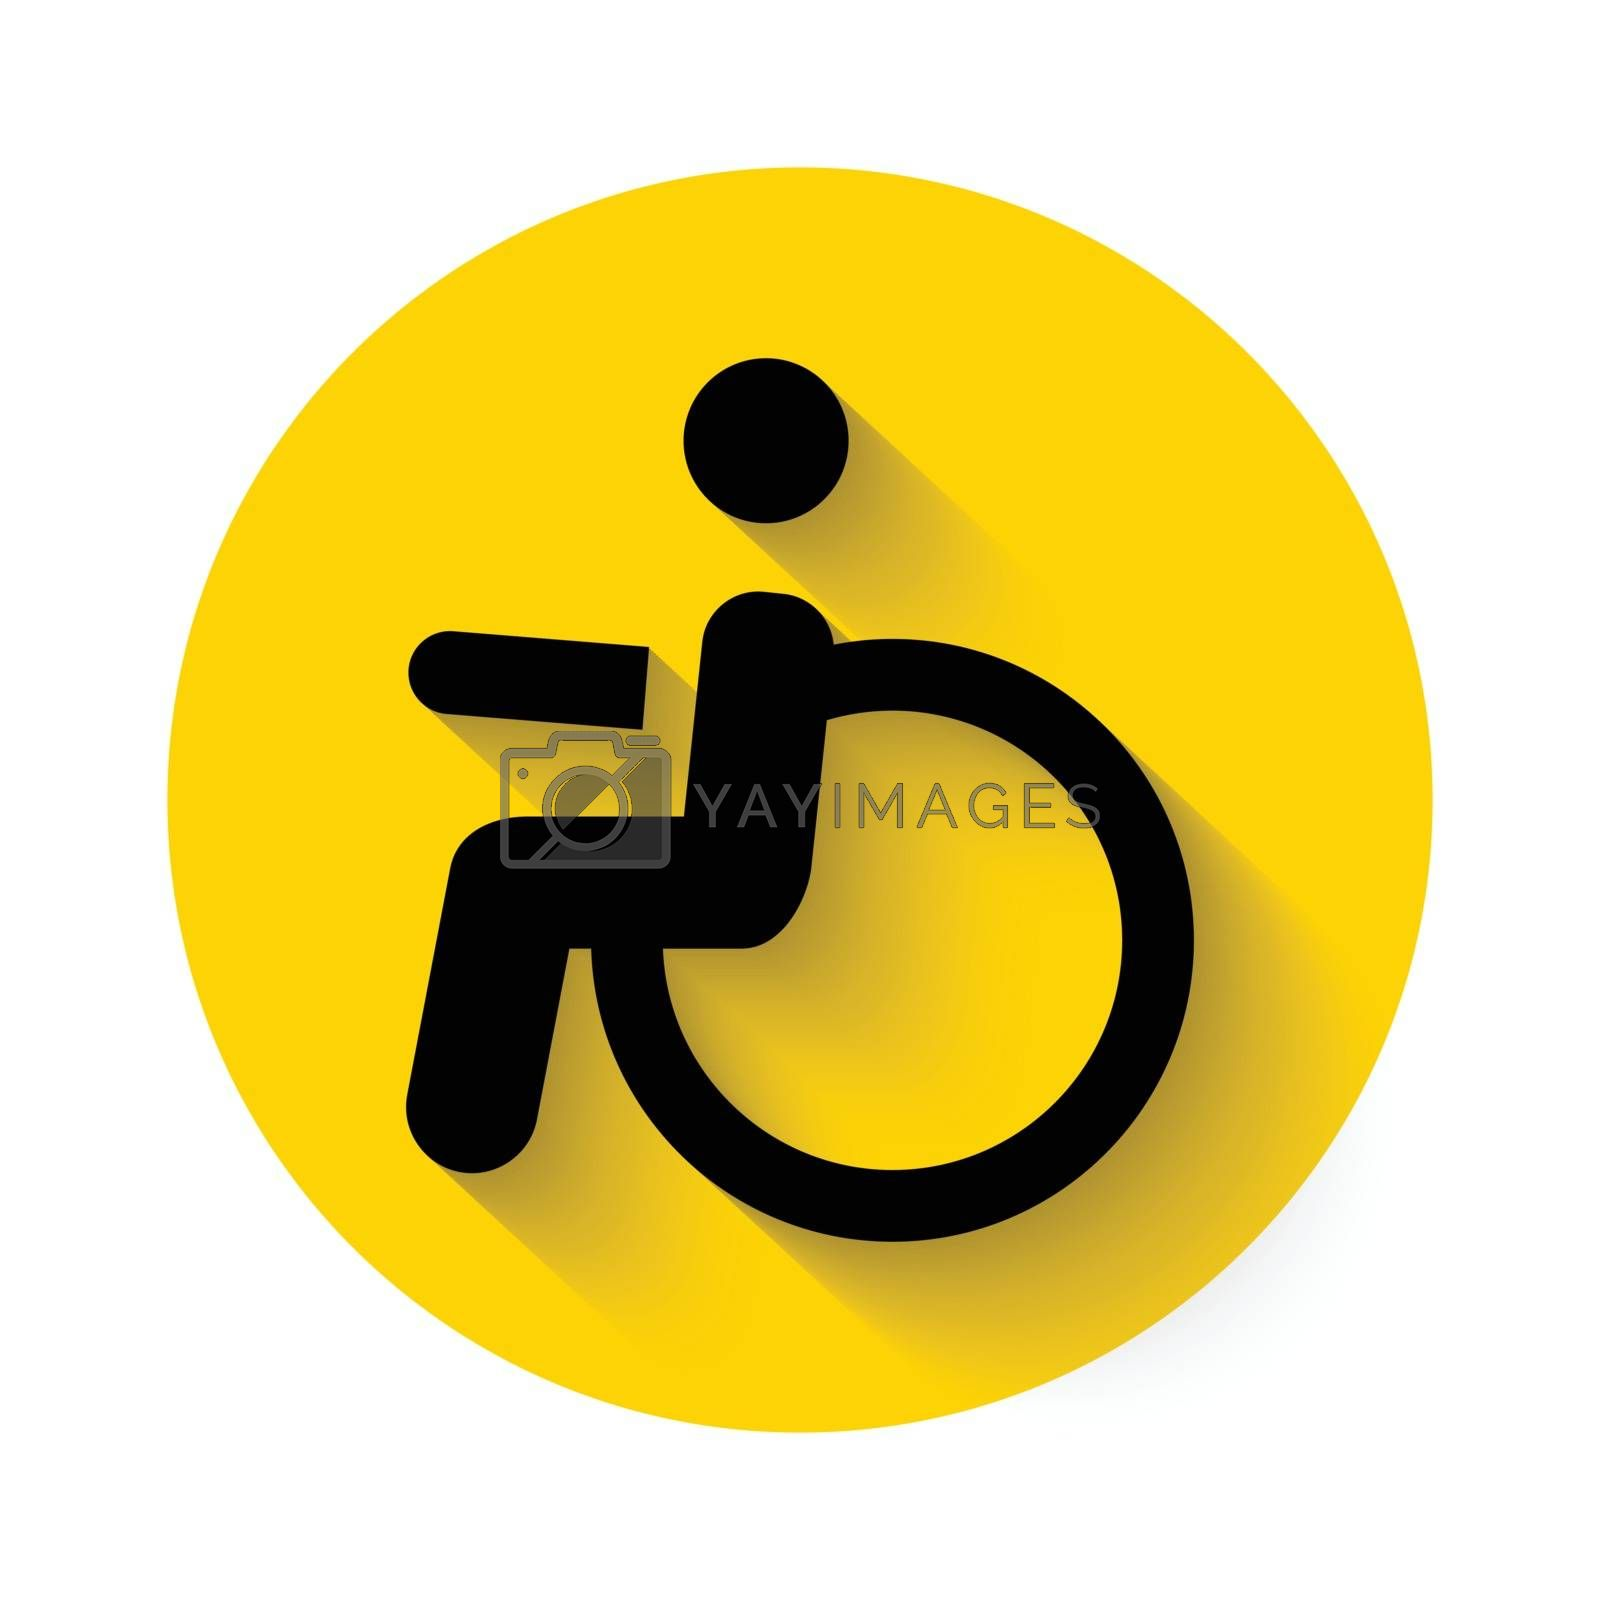 Disabled icon or sign isolated on yellow background